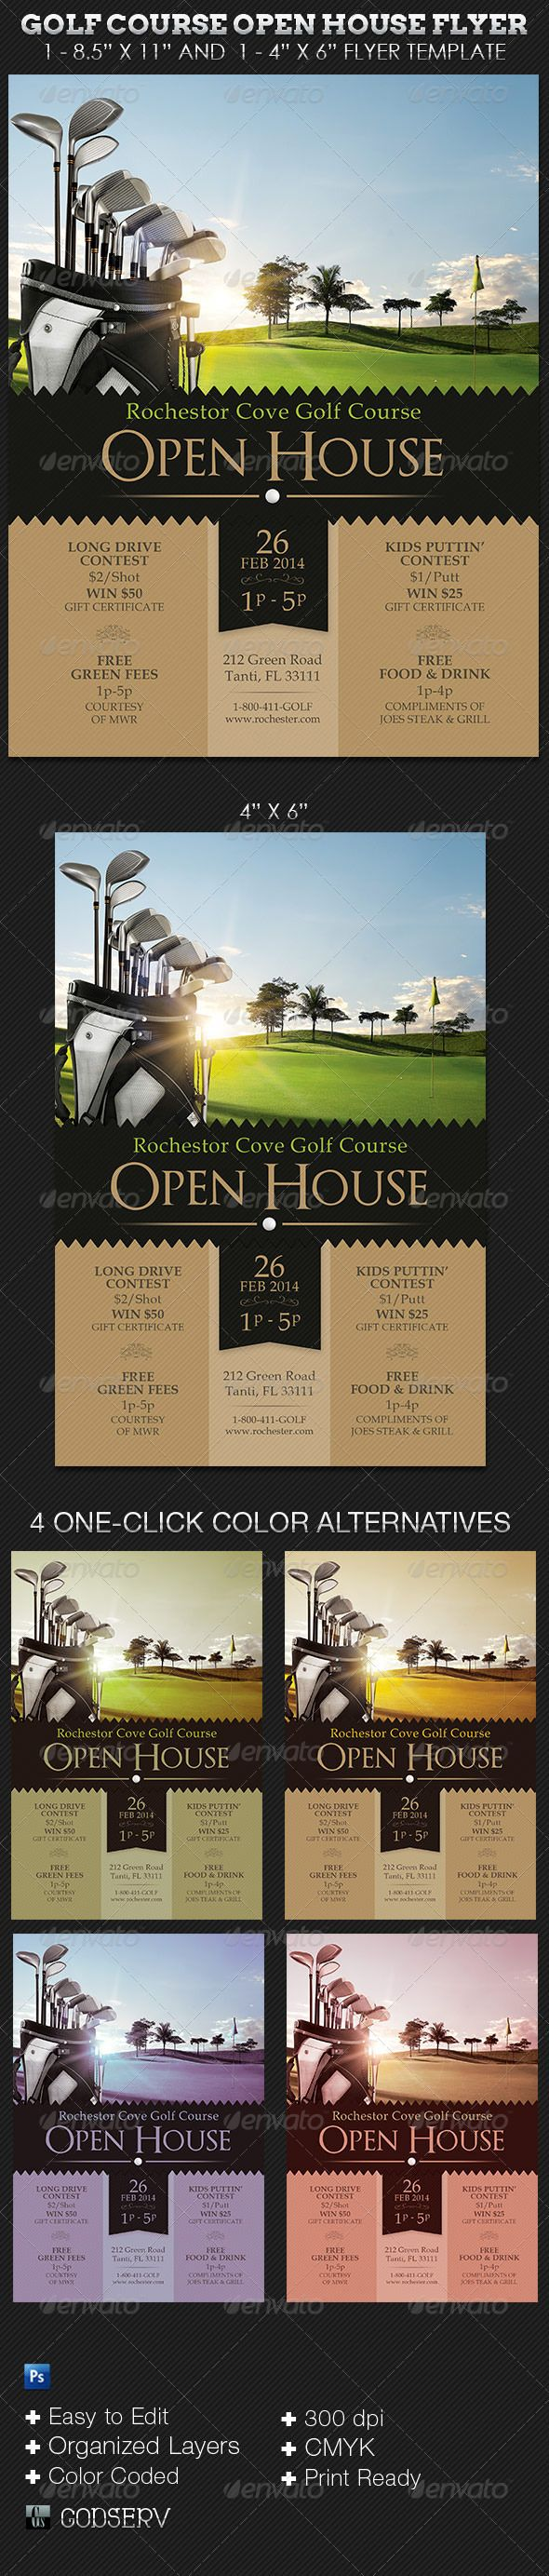 Golf Course Open House Flyer Templates  Golf Party Sports Clubs